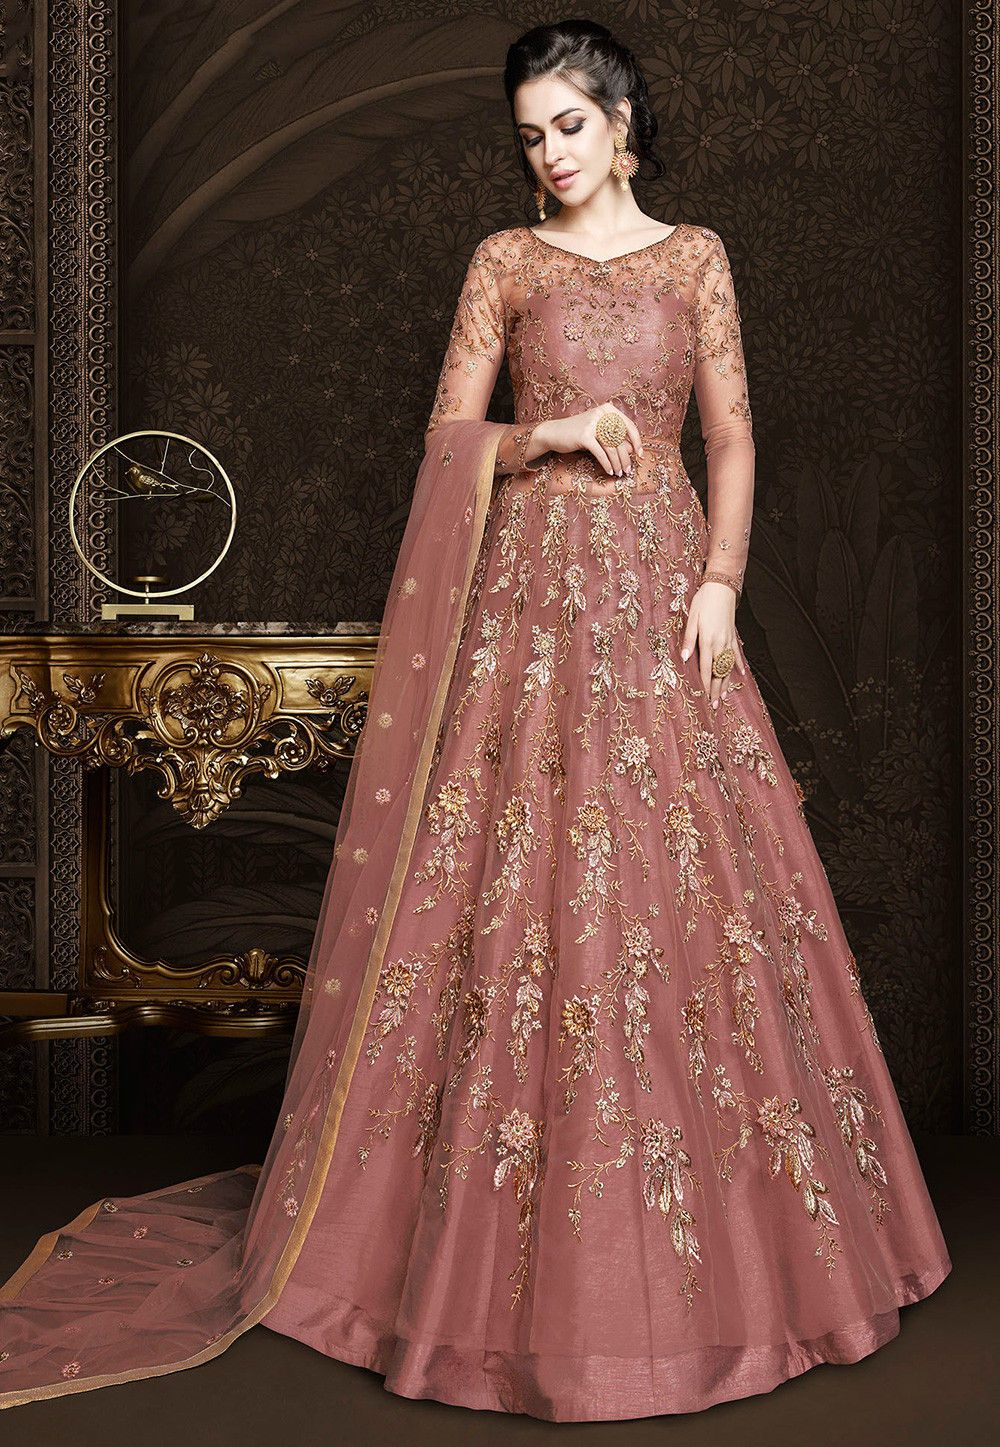 4fa1c09aa6 Buy Embroidered Net Lehenga in Old Rose online, Item code: LQU611, Color:  Pink, Occasion: Wedding, Festive, Work: Contemporary, Resham, Stone Work,  Zari, ...